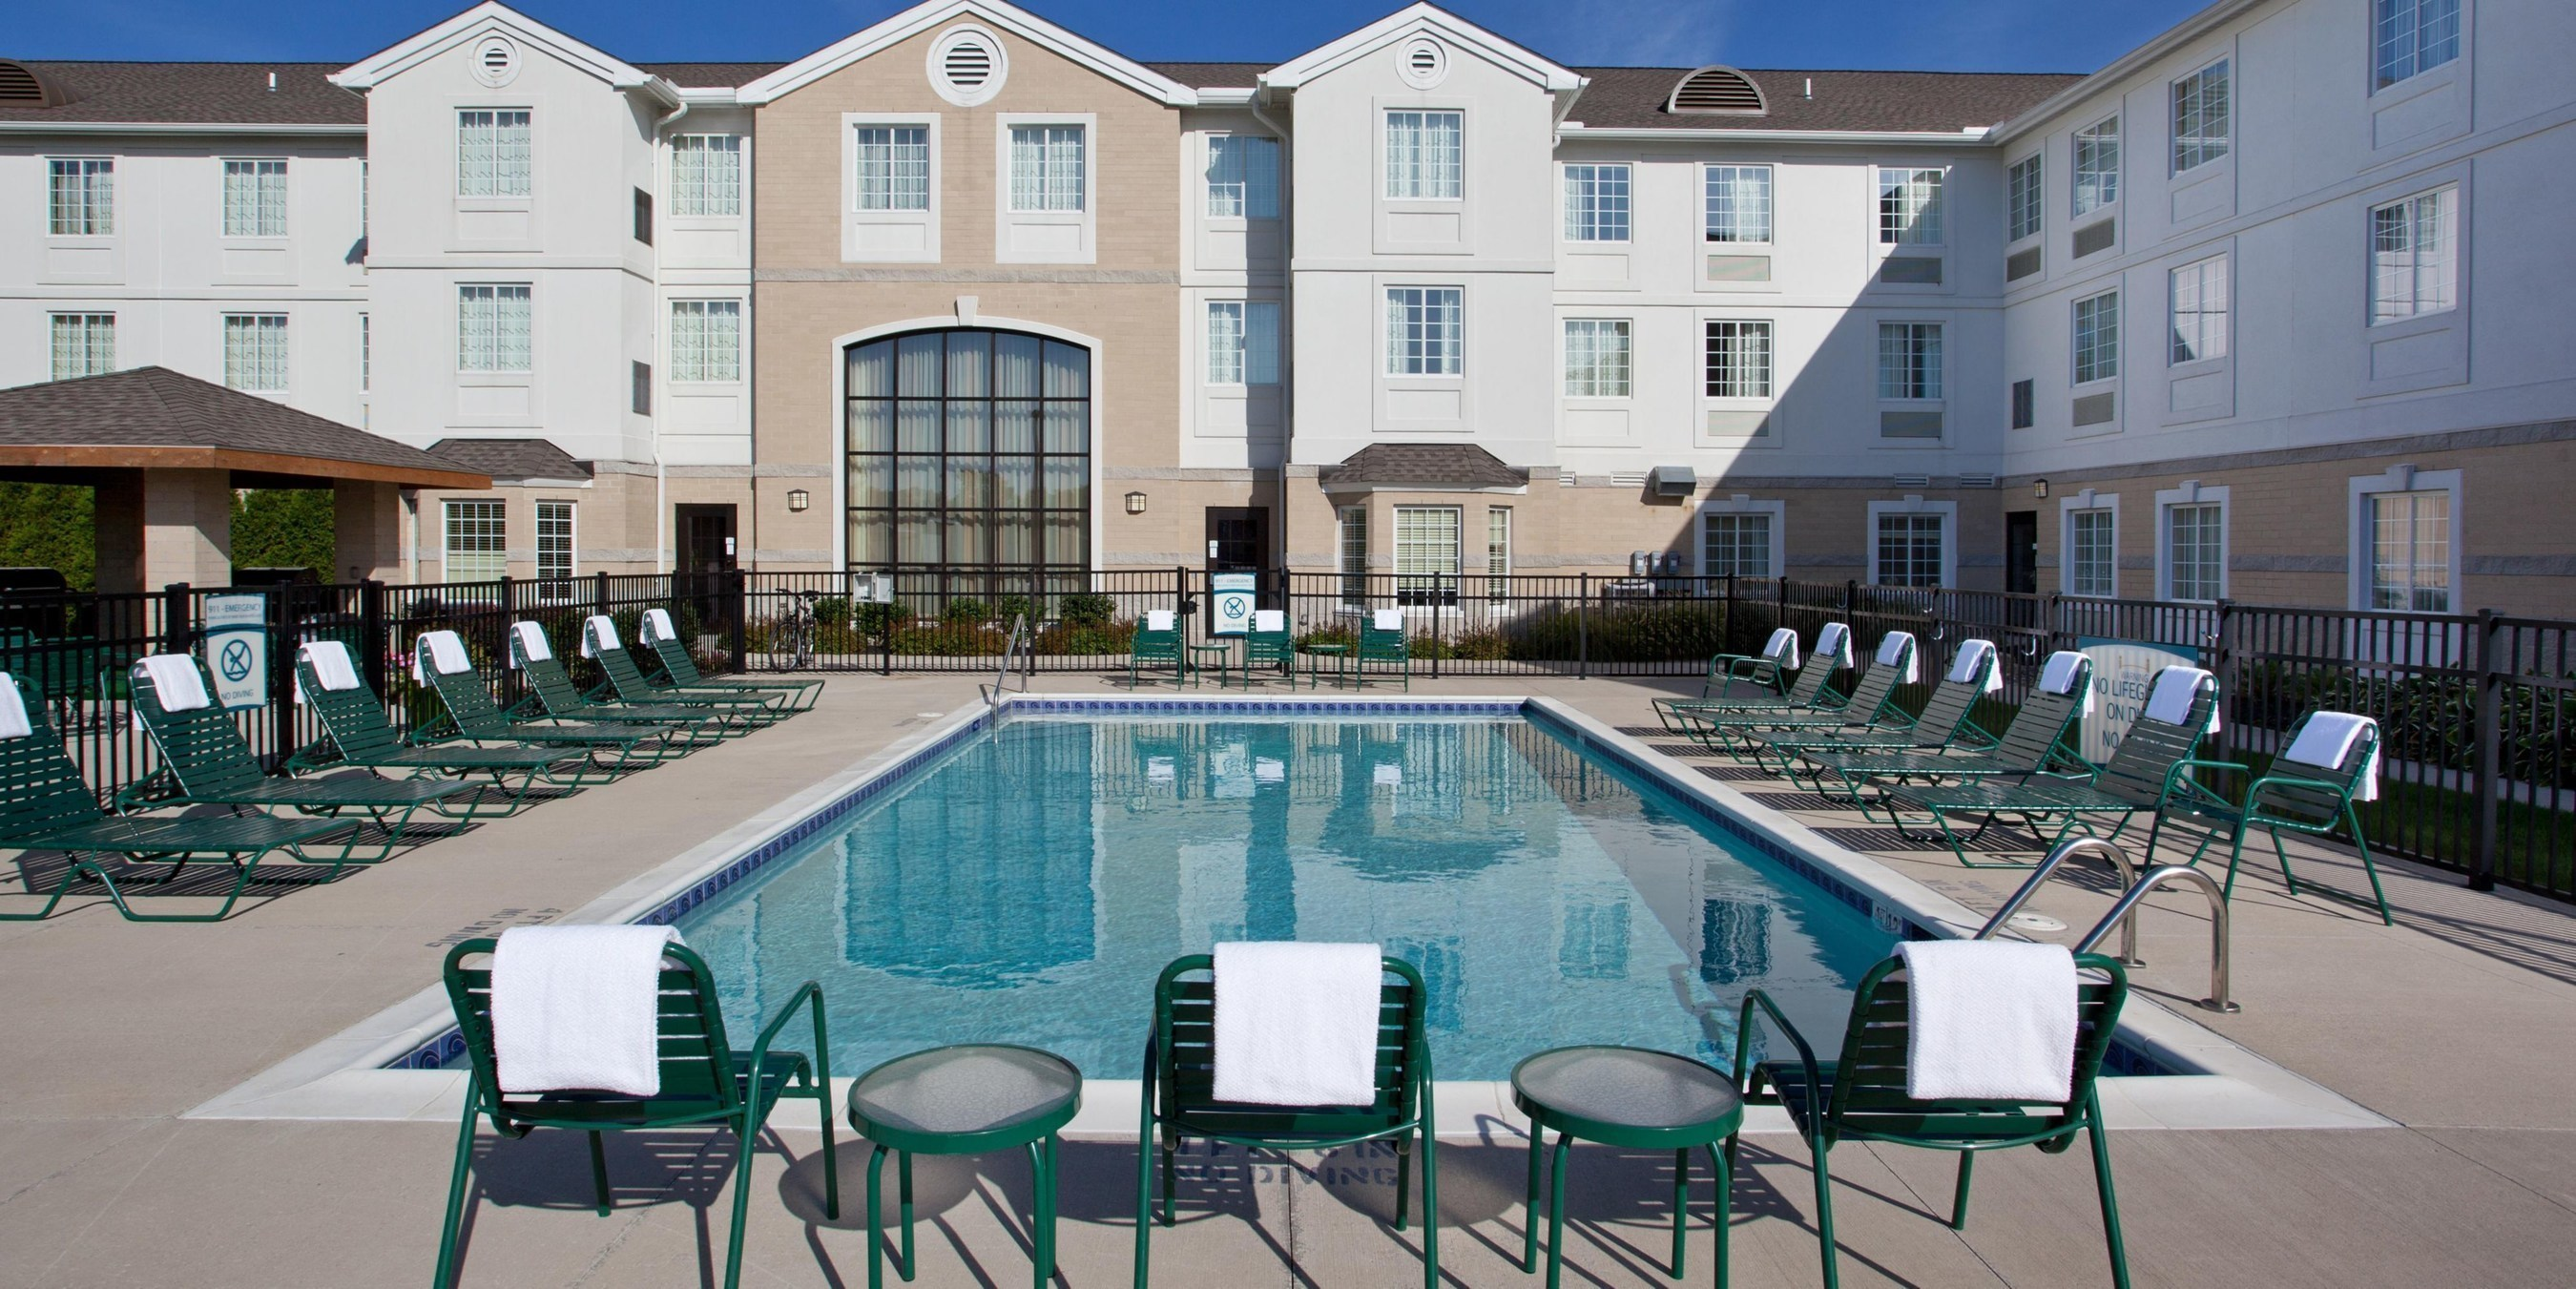 Staybridge Suites Cleveland/Mayfield Heights in Mayfield Heights, Ohio, a 123-room upscale extended-stay hotel, has been acquired by Chicago-based Arbor Lodging Partners, a leading fully integrated national owner and operator of hotels.